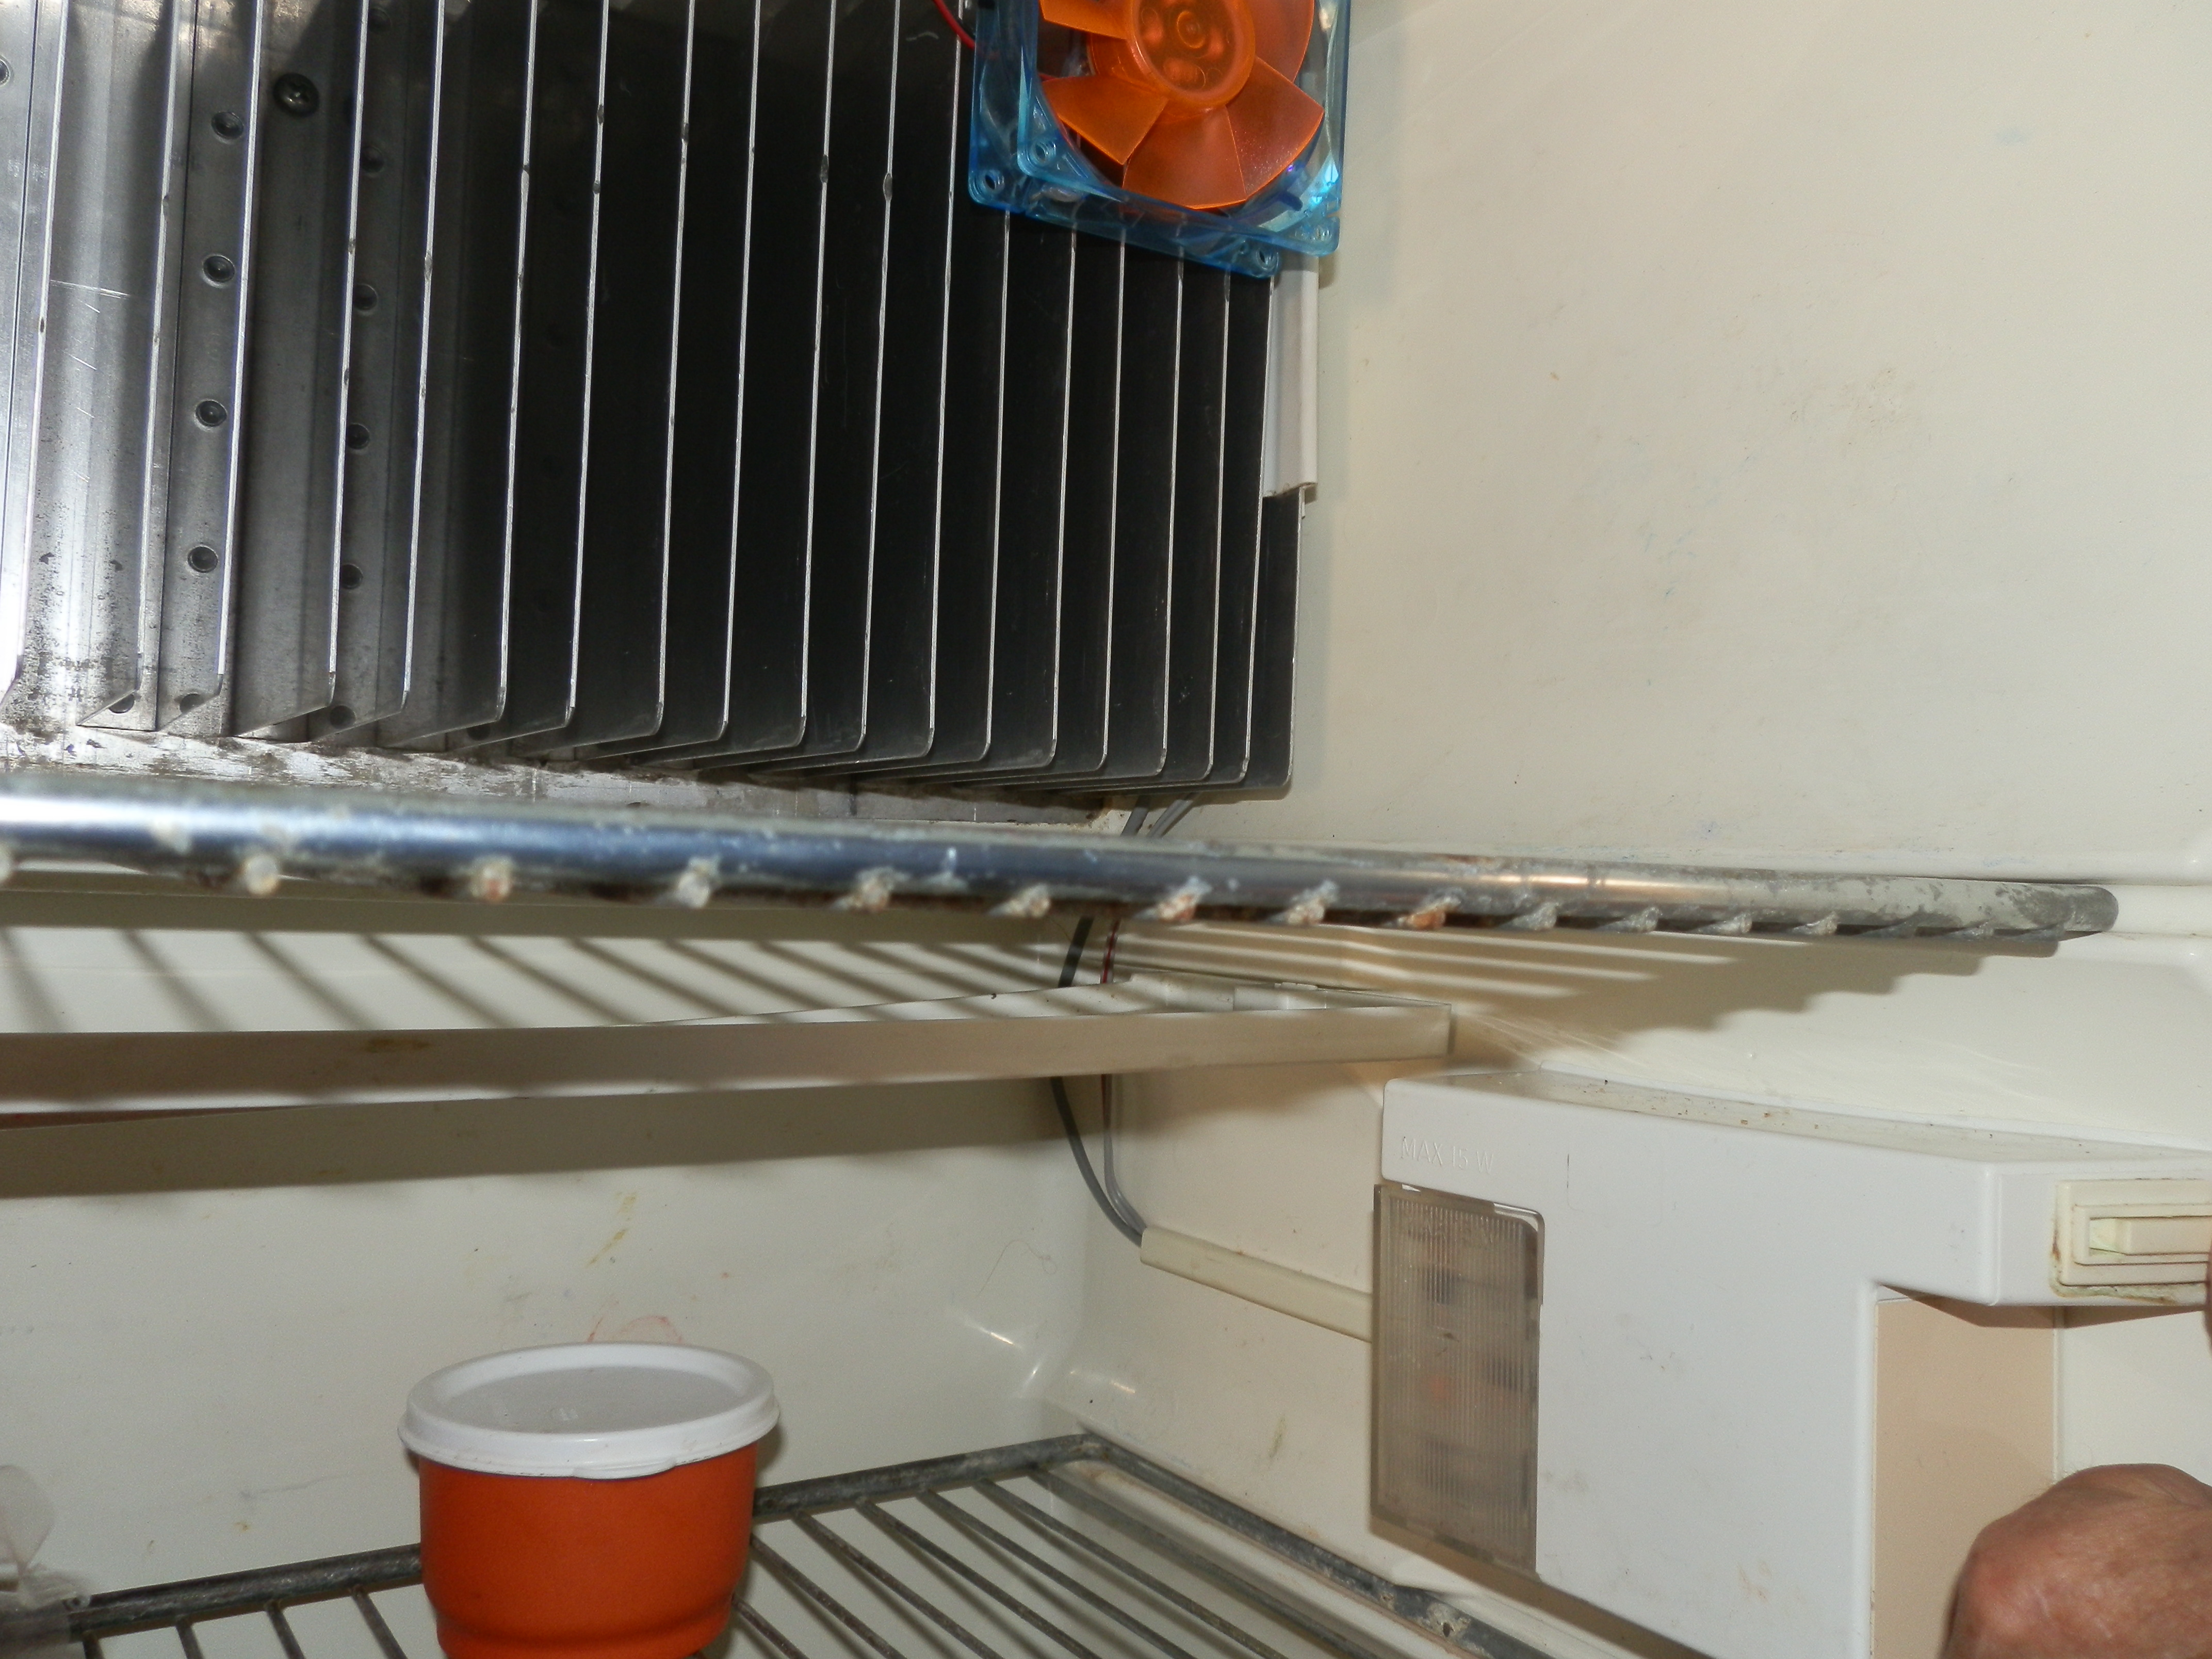 Refer Fan Diy Installation Chaos Leaves Town